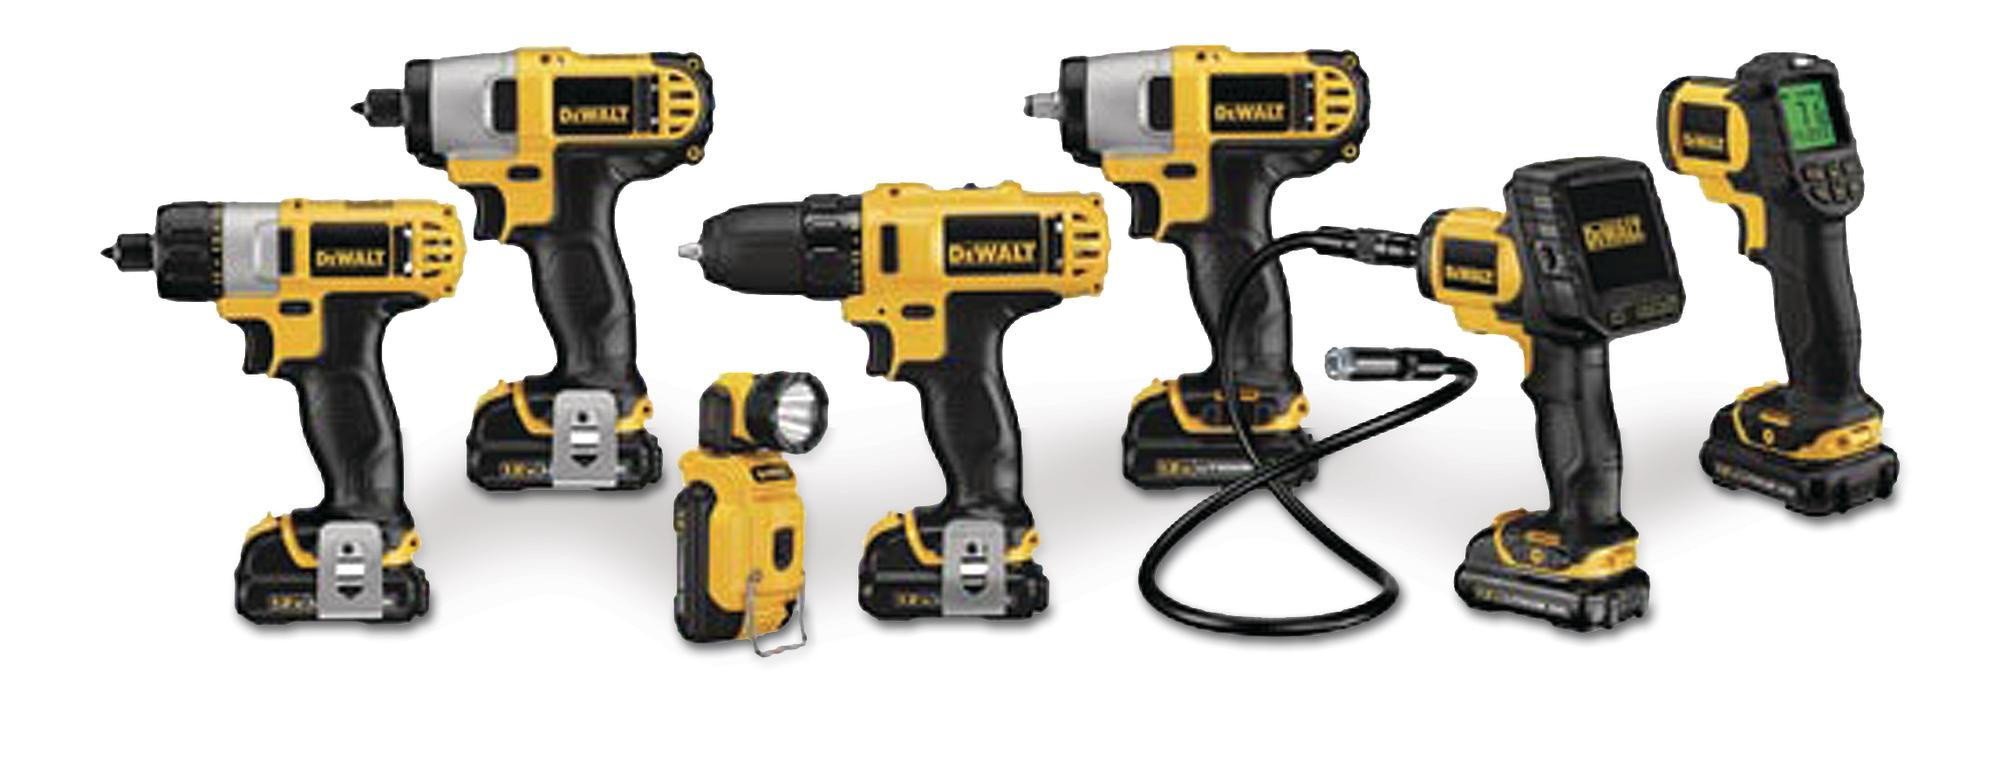 an analysis of the findings black and deckers dewalt line Recommendations: proceed with option 3, eliminating black & decker brand products from the professional segment utilize the dewalt brand name on all professional segment tools with a service and warranty handling endorsement by b & d focus market entry under dewalt name for the tools identified in research as having the.